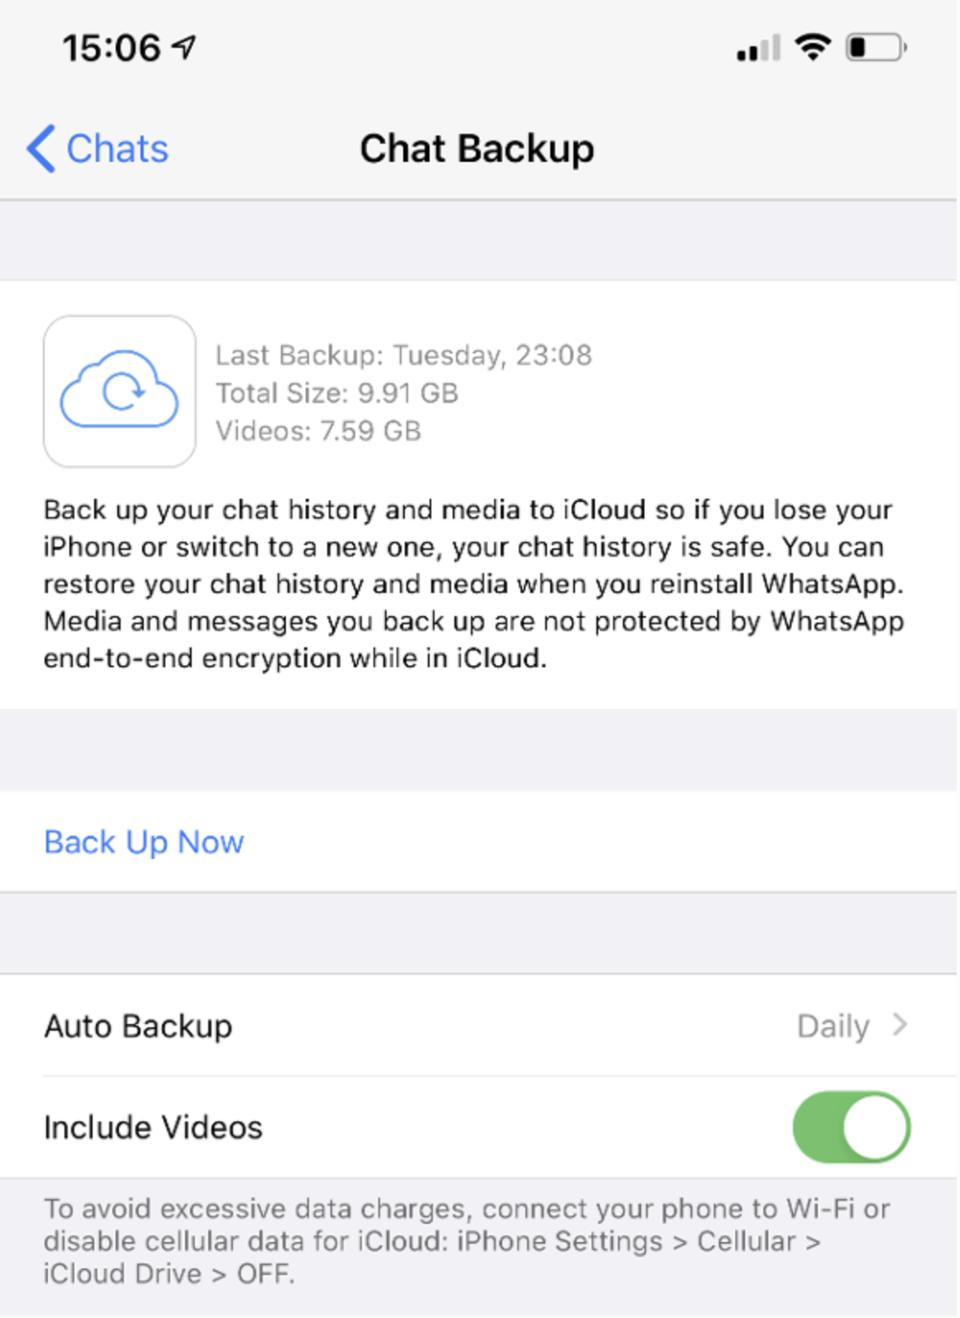 Current iOS WhatsApp backup is not end-to-end encrypted.